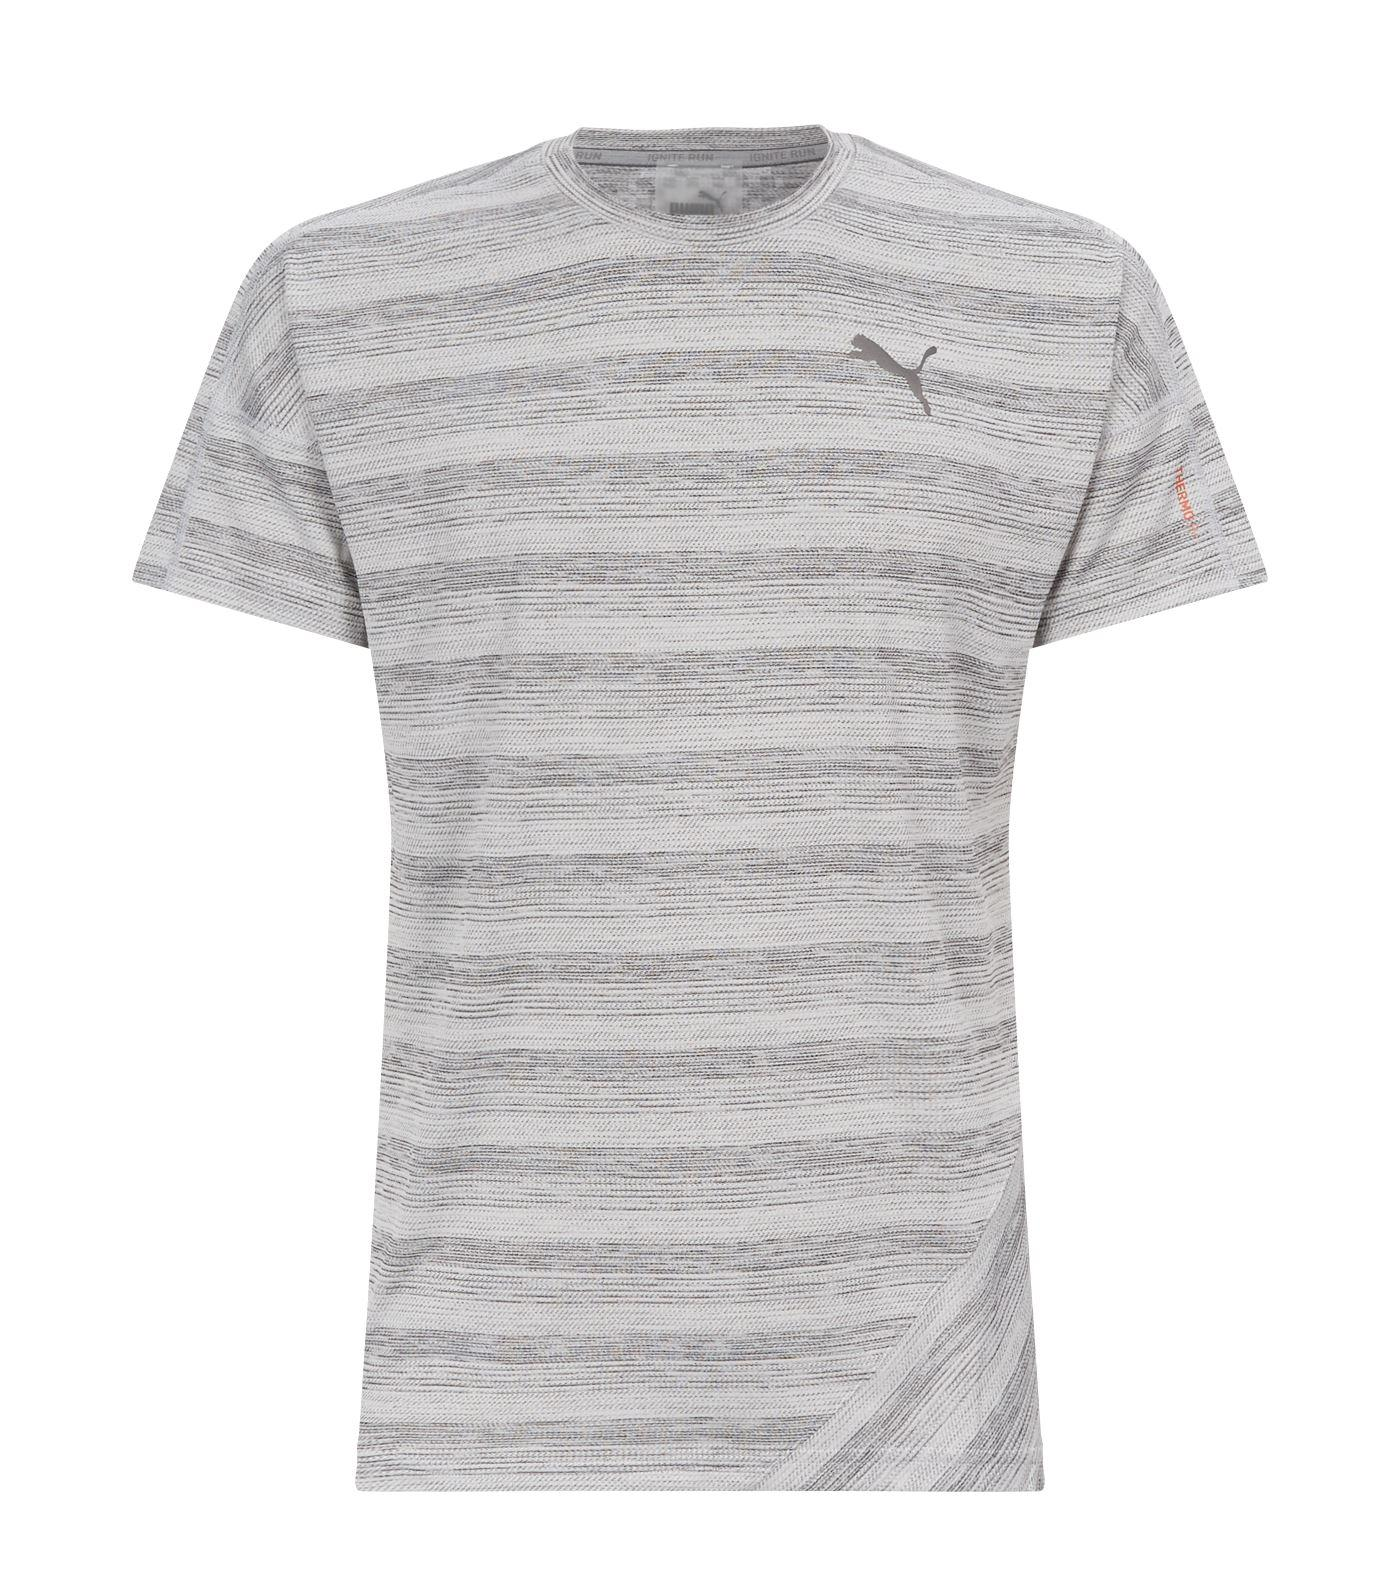 991e1643030 Lyst - PUMA Pace Short Sleeve T-shirt in Gray for Men - Save 13%